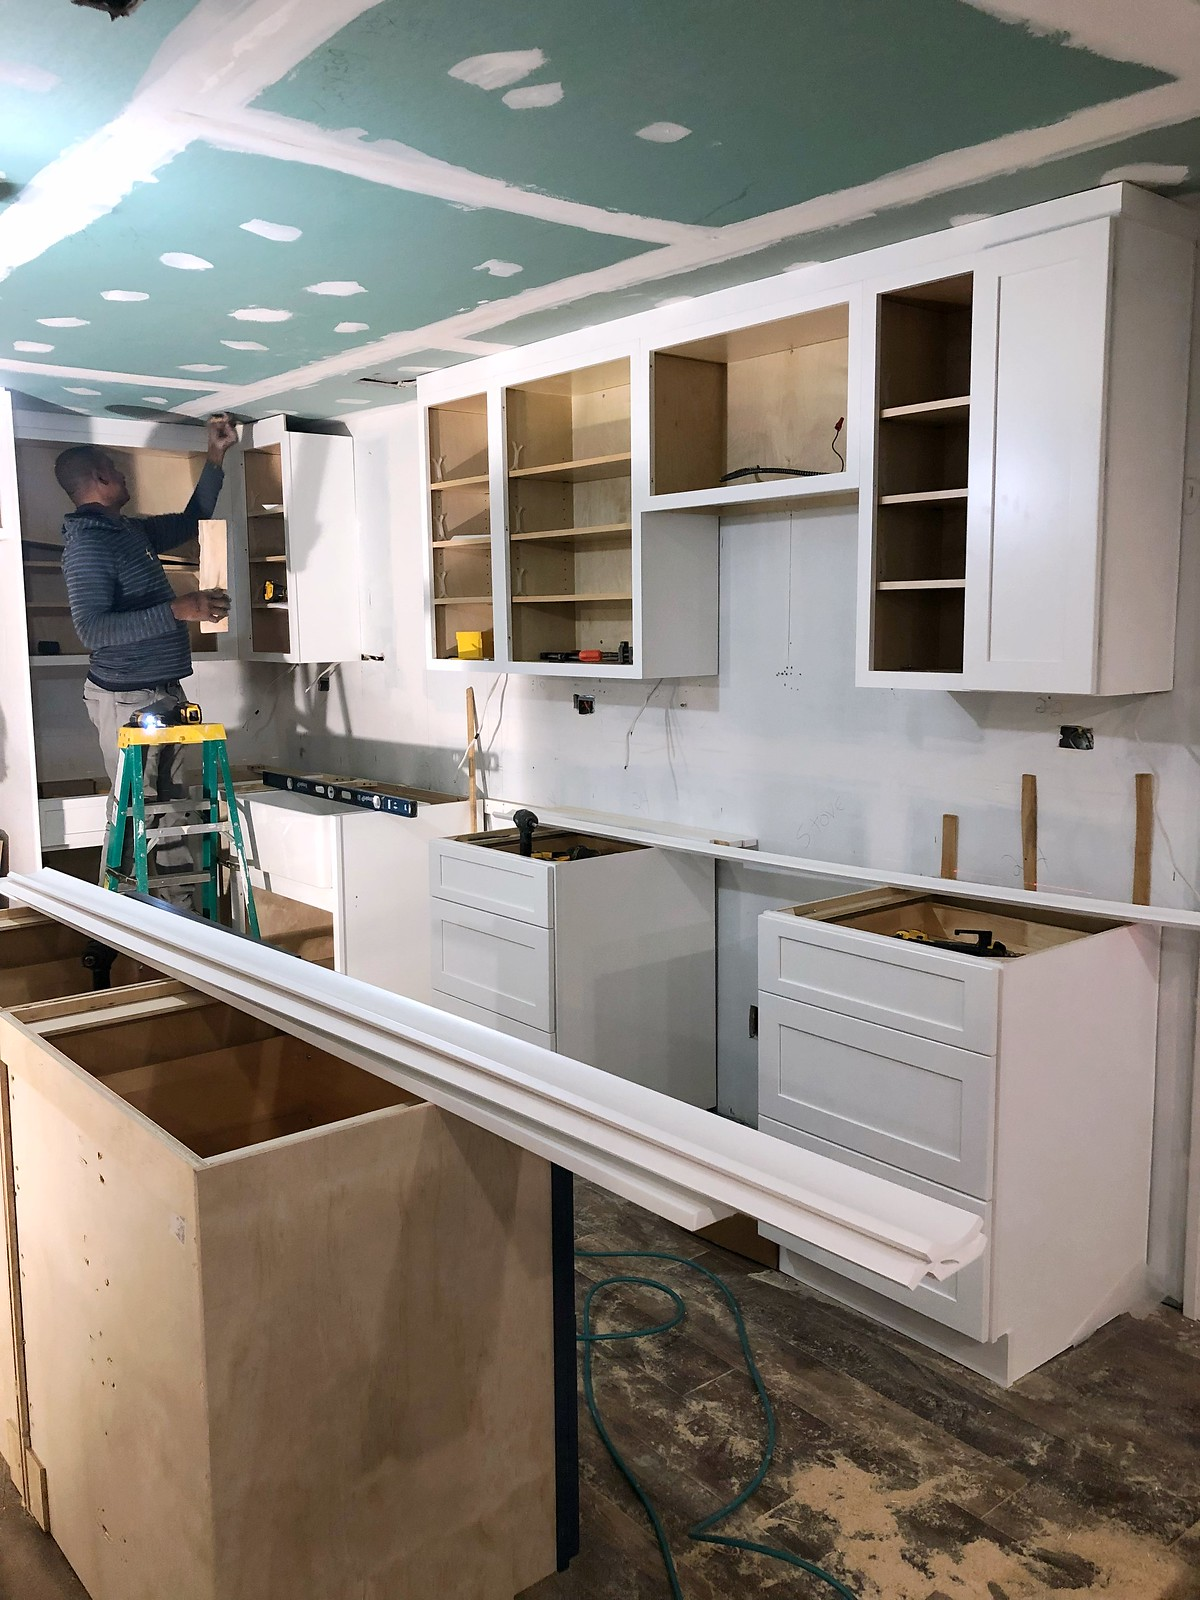 All White Cabinet Install | Before & After: My New York Apartment Kitchen Renovation | 1970s Apartment Small Kitchen Redesign | Living After Midnite Jackie Giardina